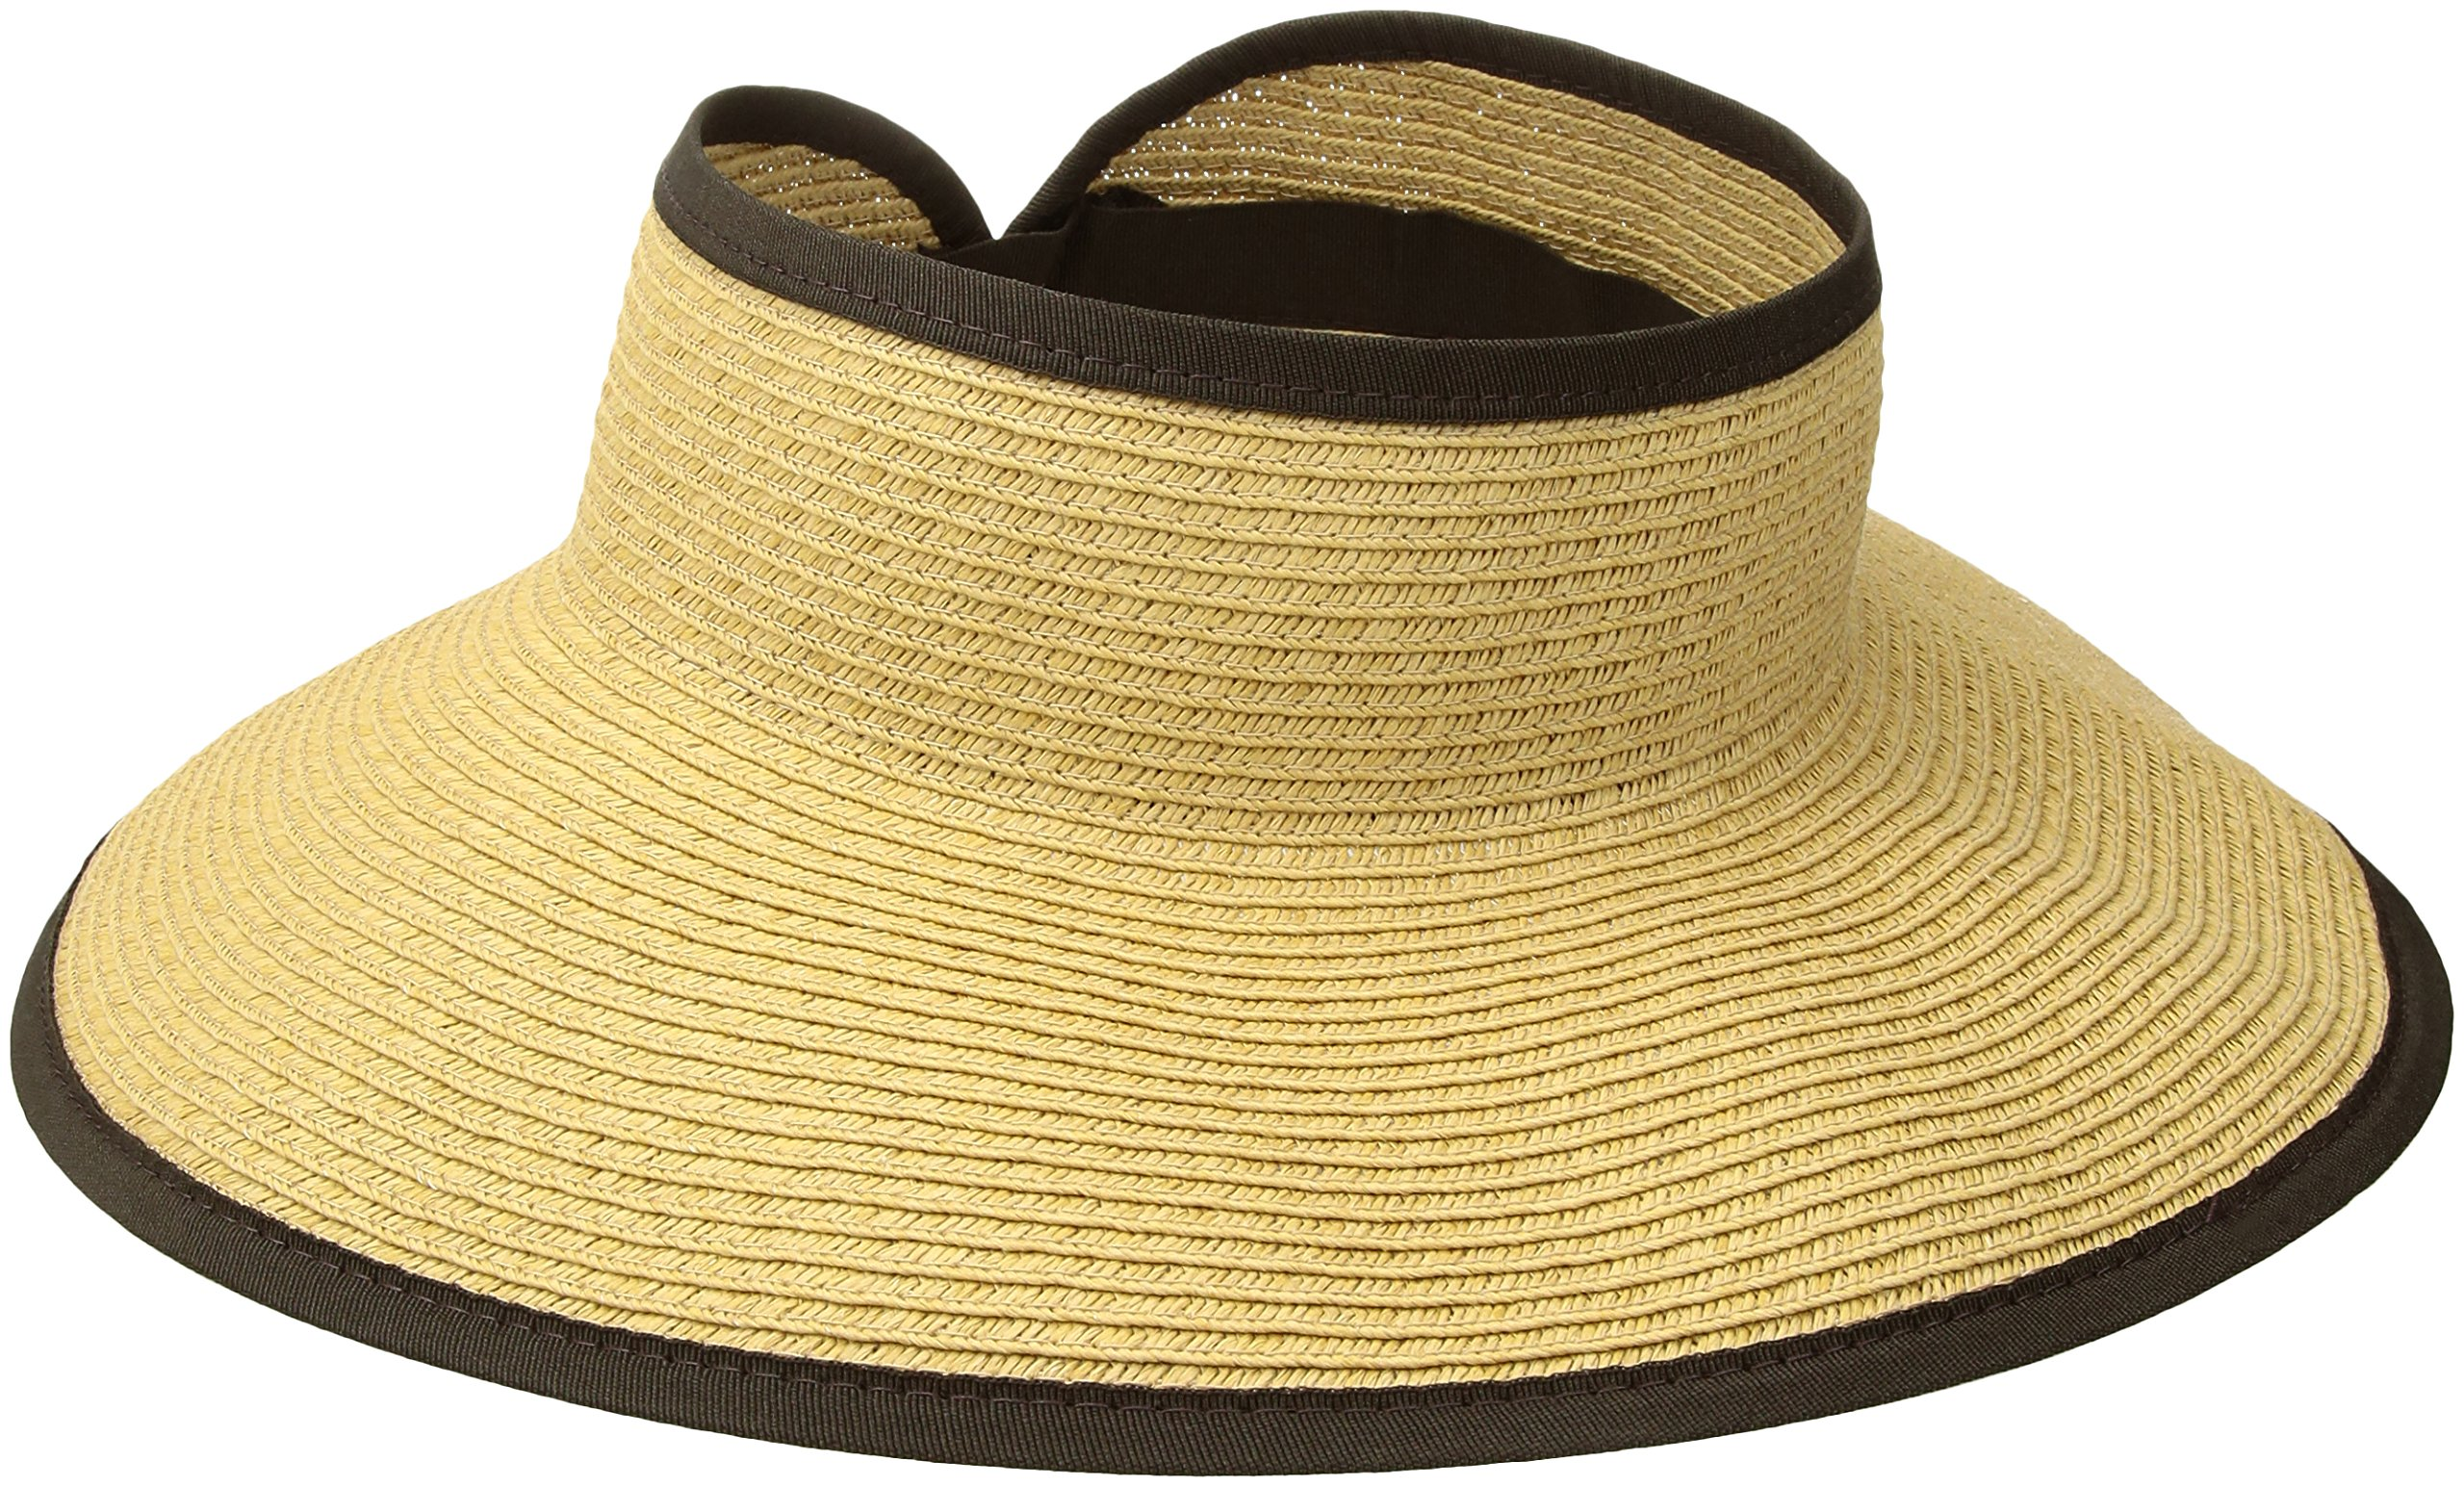 San Diego Hat Company Women's Ultrabraid Visor with Ribbon Binding, and Sweatband, Camel Brown, One Size by San Diego Hat Company